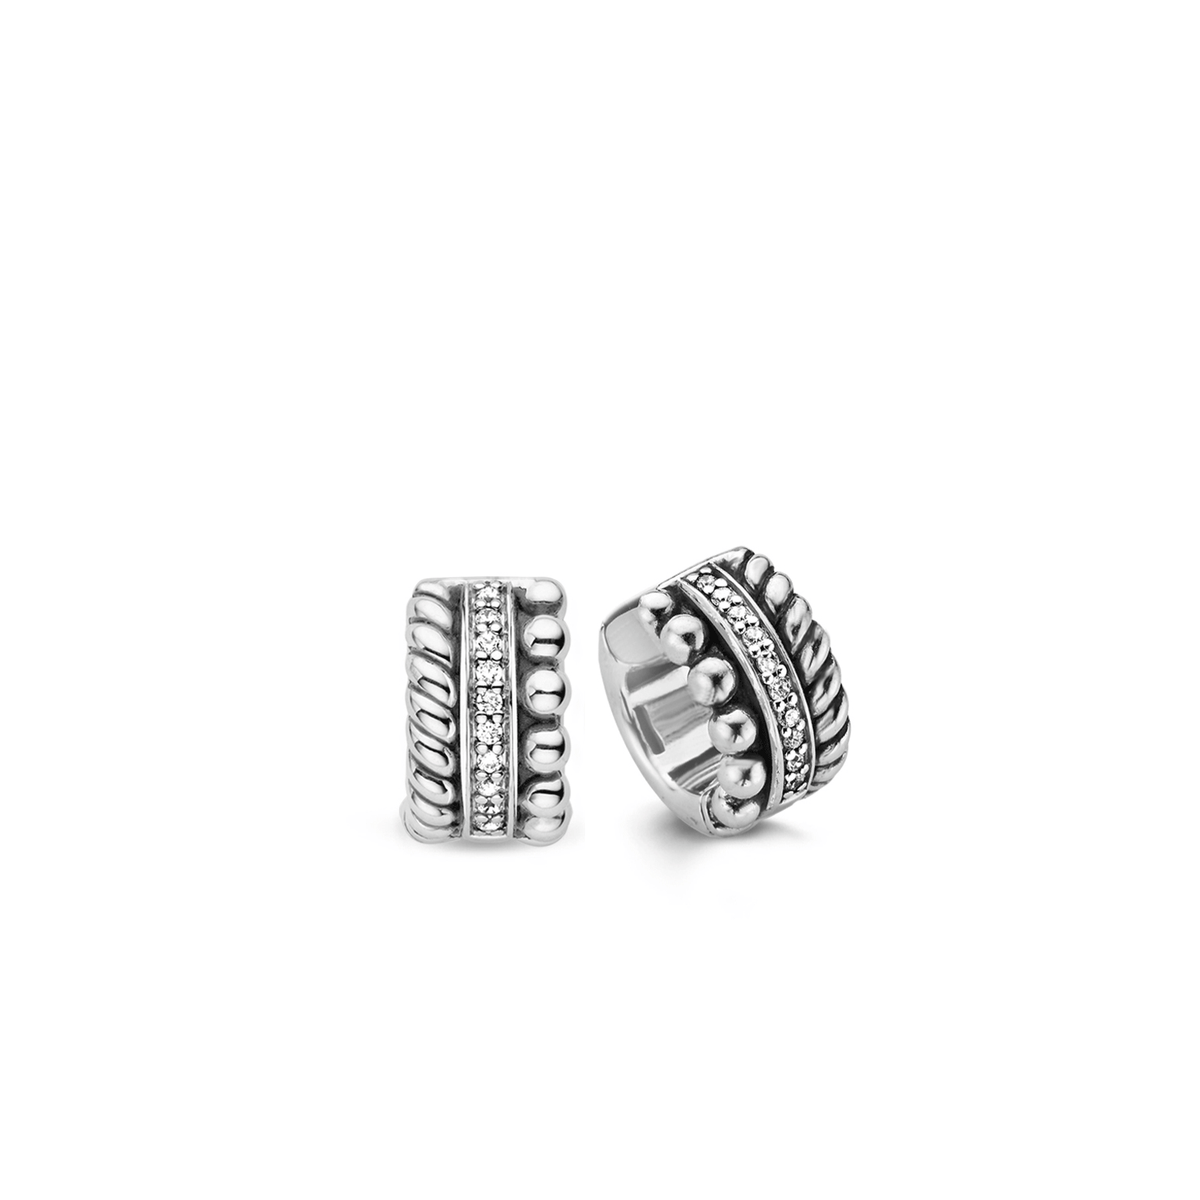 TI SENTO - Milano Earrings 7604ZI